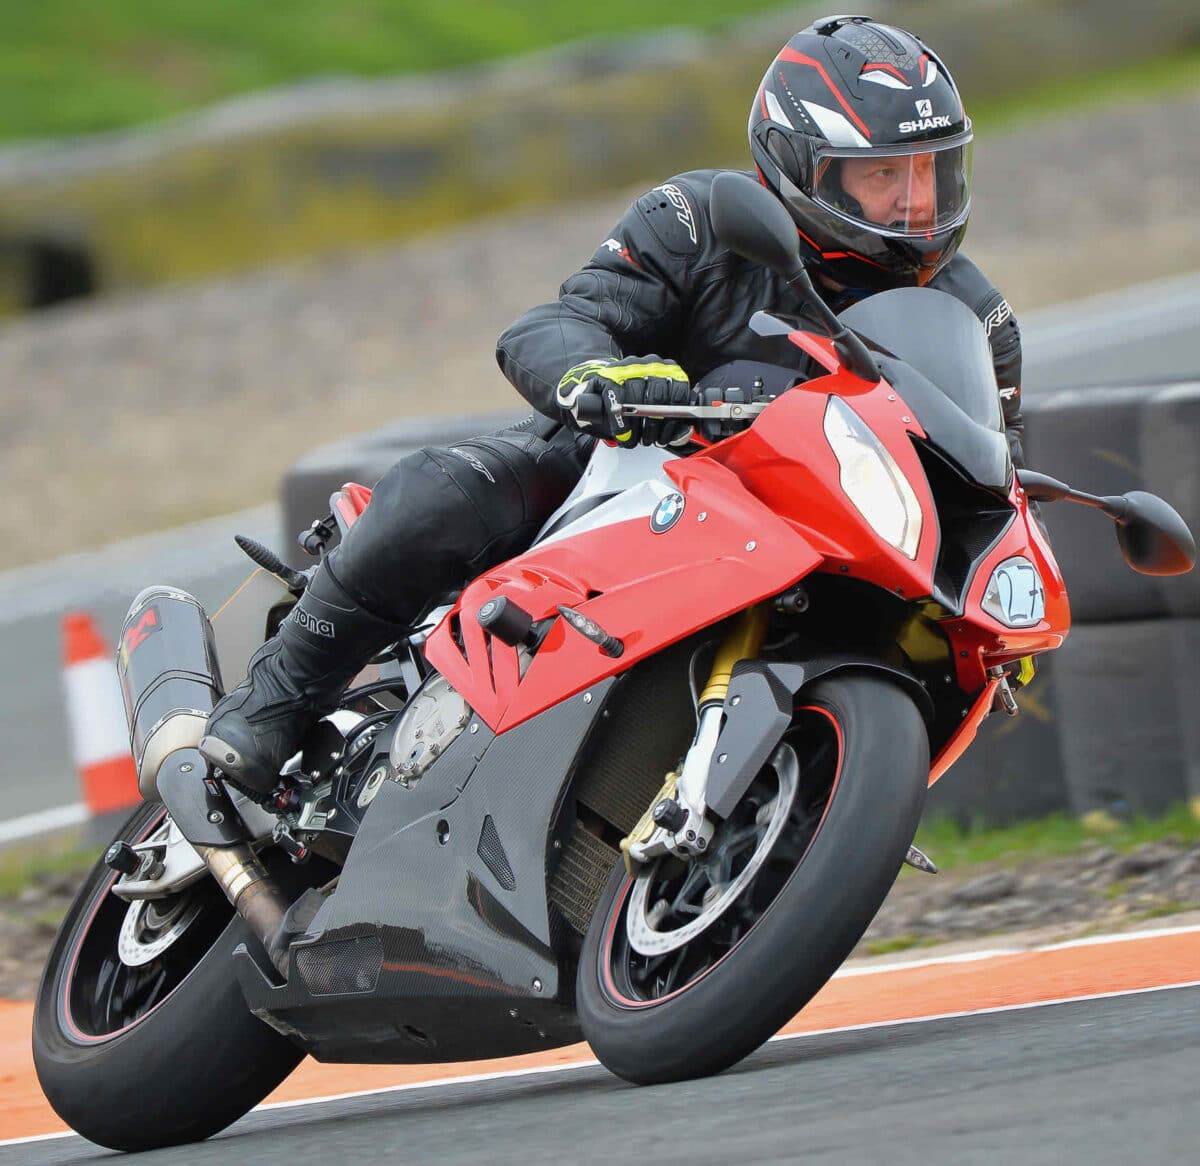 Shows a bike on the track at Blyton